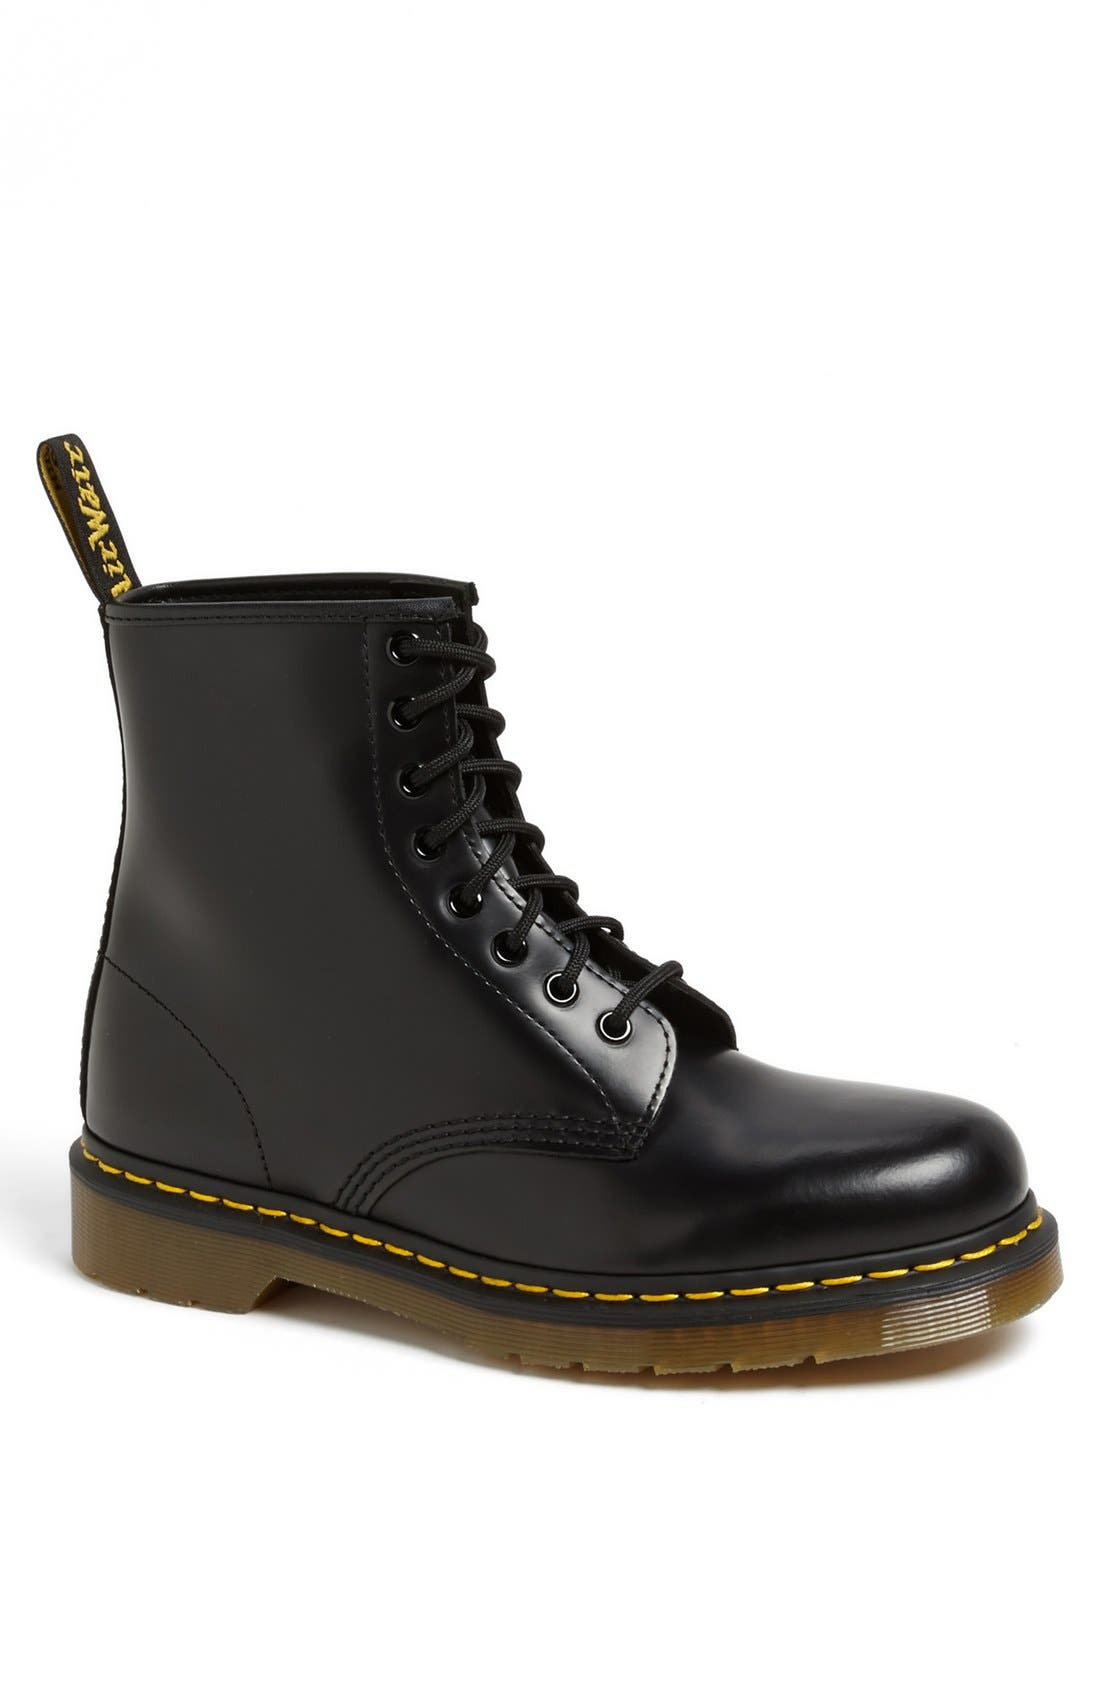 '1460' Boot,                         Main,                         color, BLACK SMOOTH